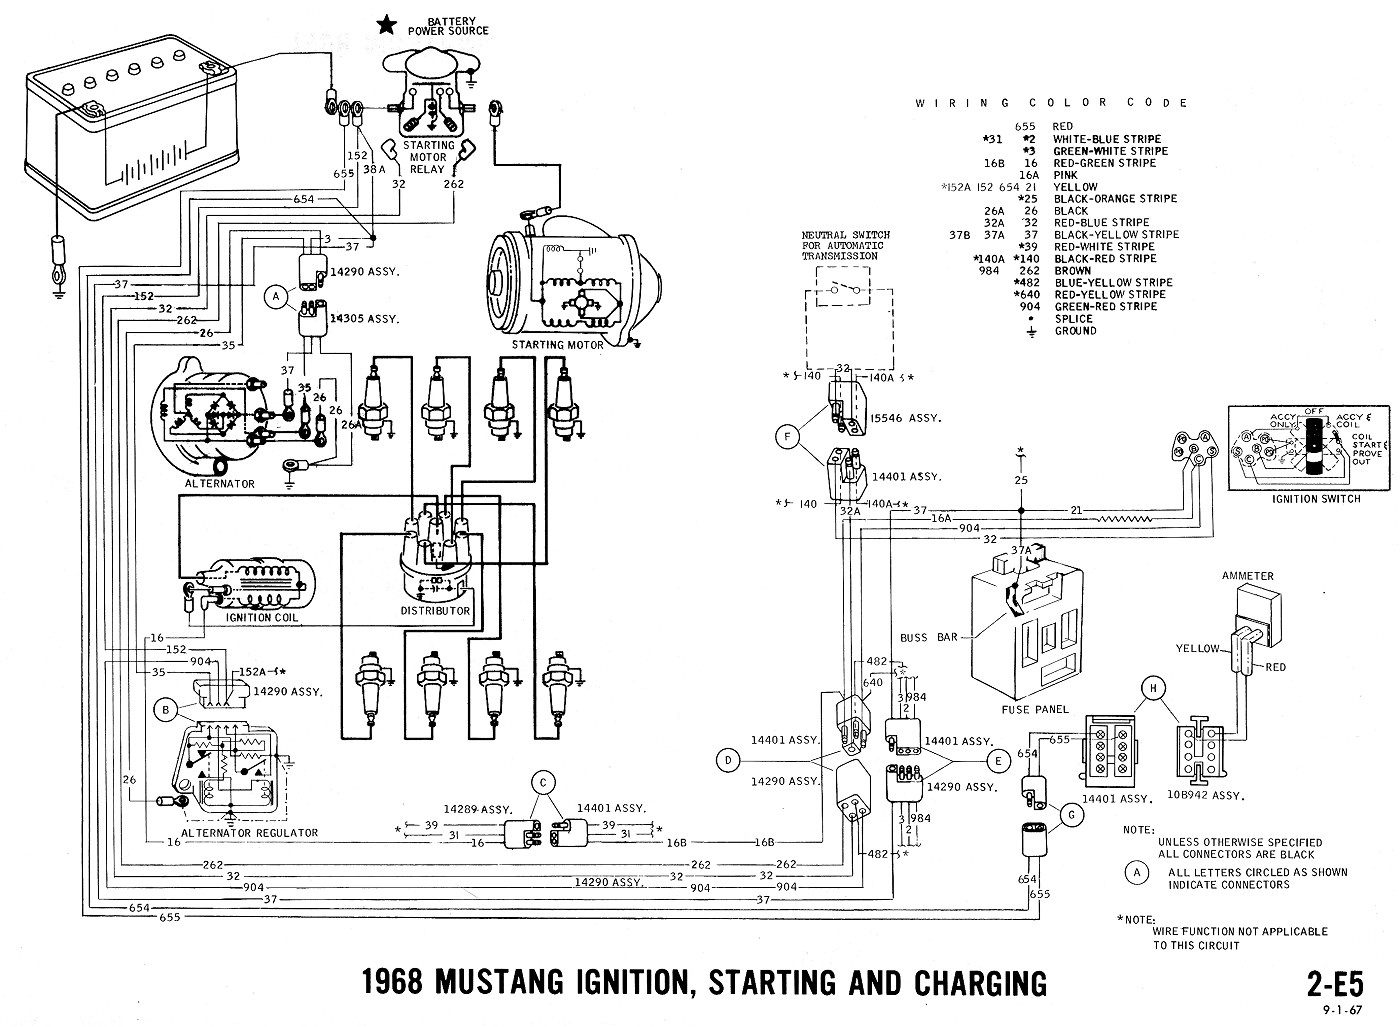 73 Charger Wiring Harness Diagram The Portal And Forum Of 1995 Mustang Dodge Diagrams Library Rh 95 Skriptoase De Chrysler Electronic Ignition